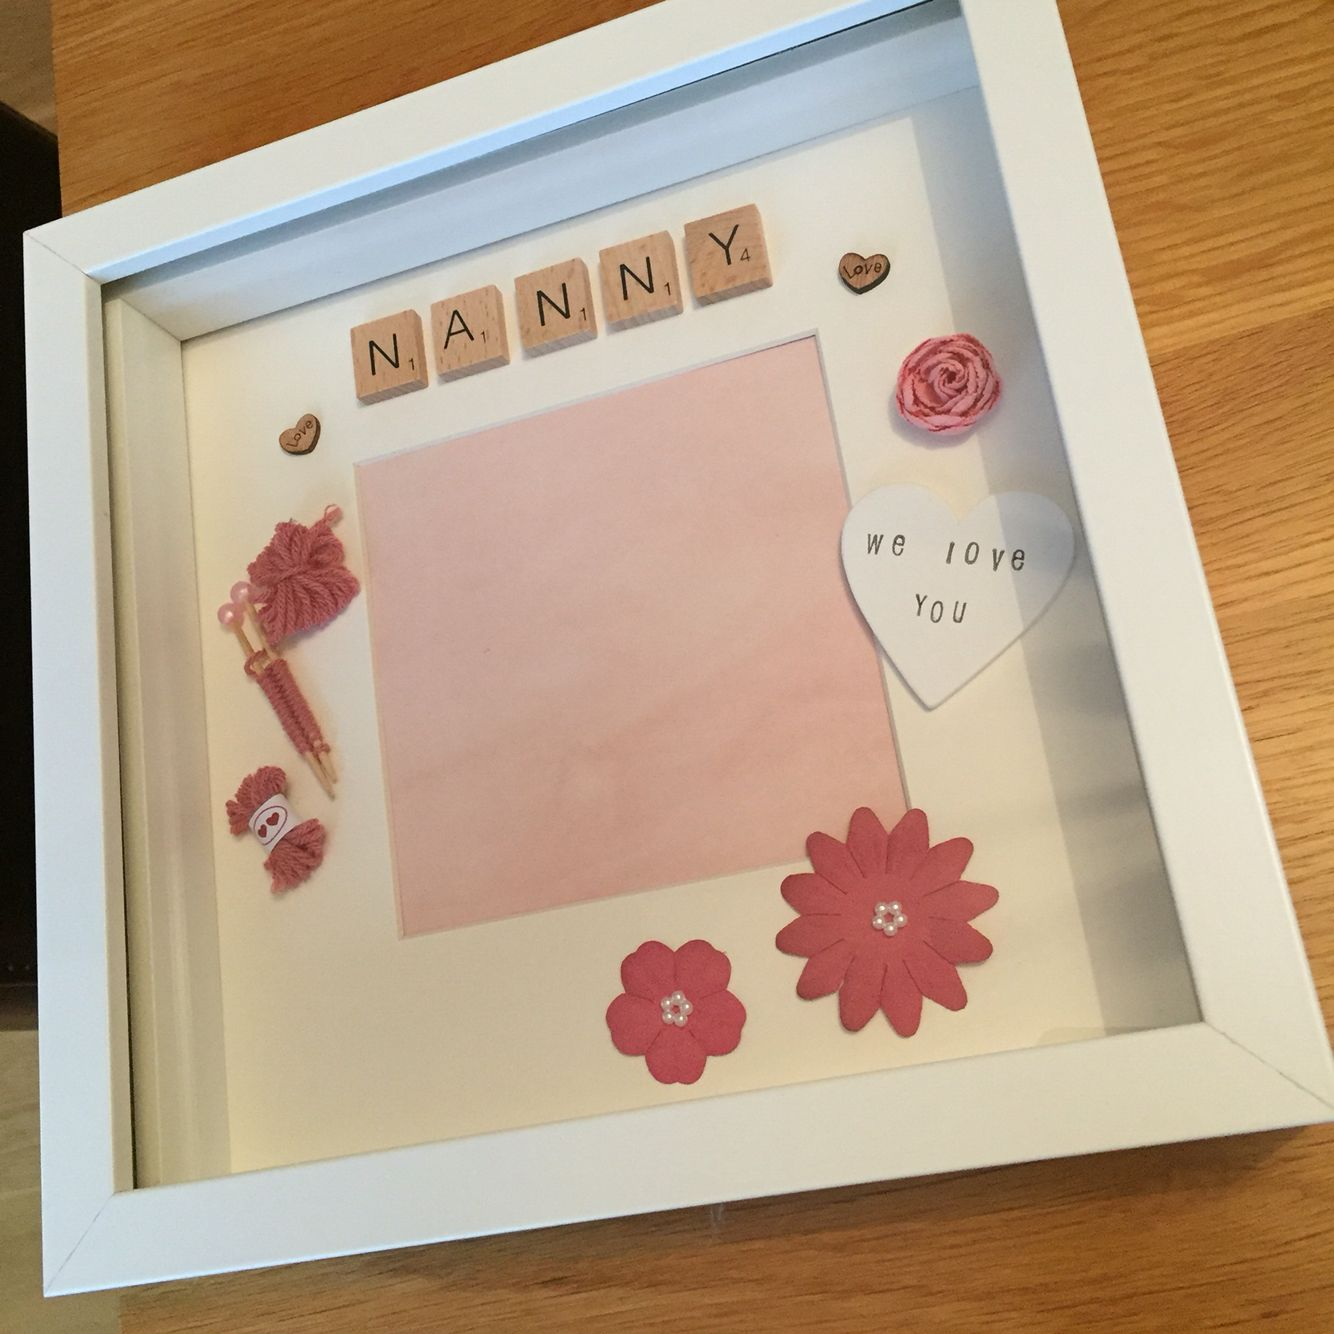 Find me on facebook one of a kind personalised frames for all find me on facebook one of a kind personalised frames for all occaisons jeuxipadfo Gallery